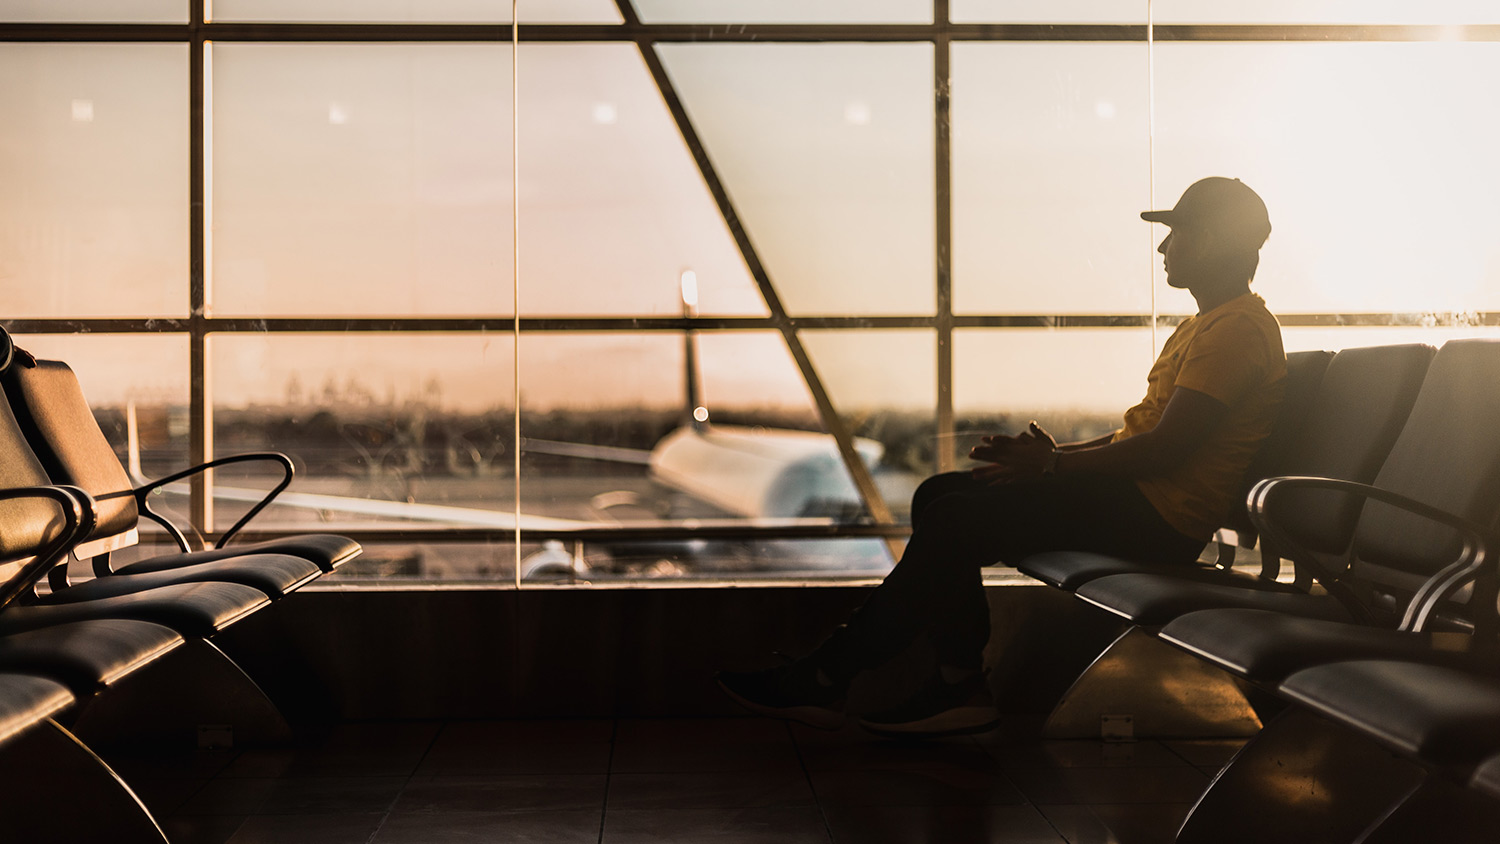 Person sitting at airport gate